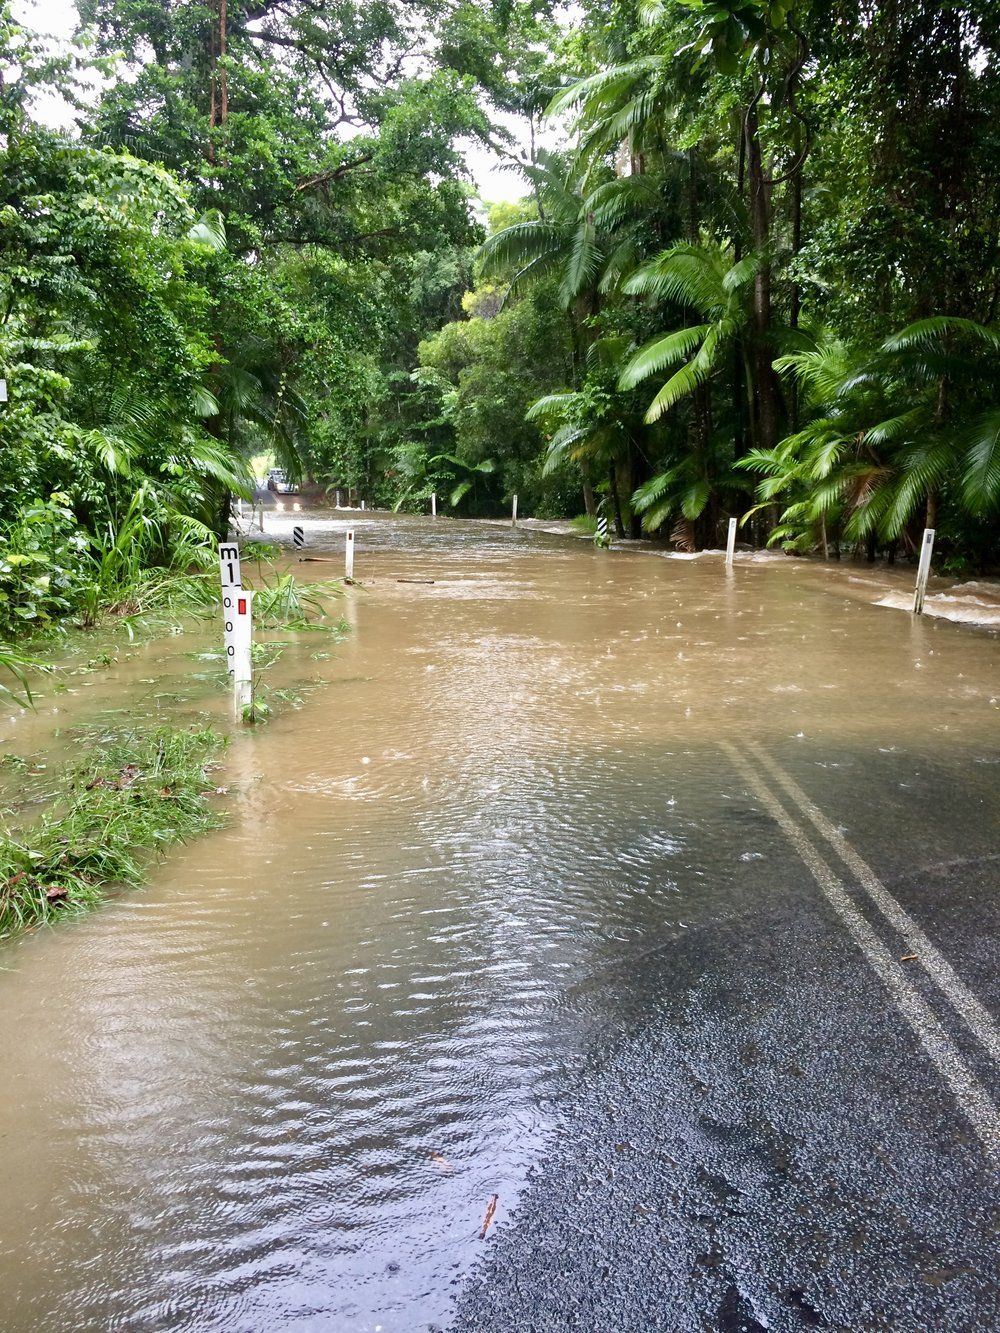 Flooded roadways on the way to Cape Tribulation.